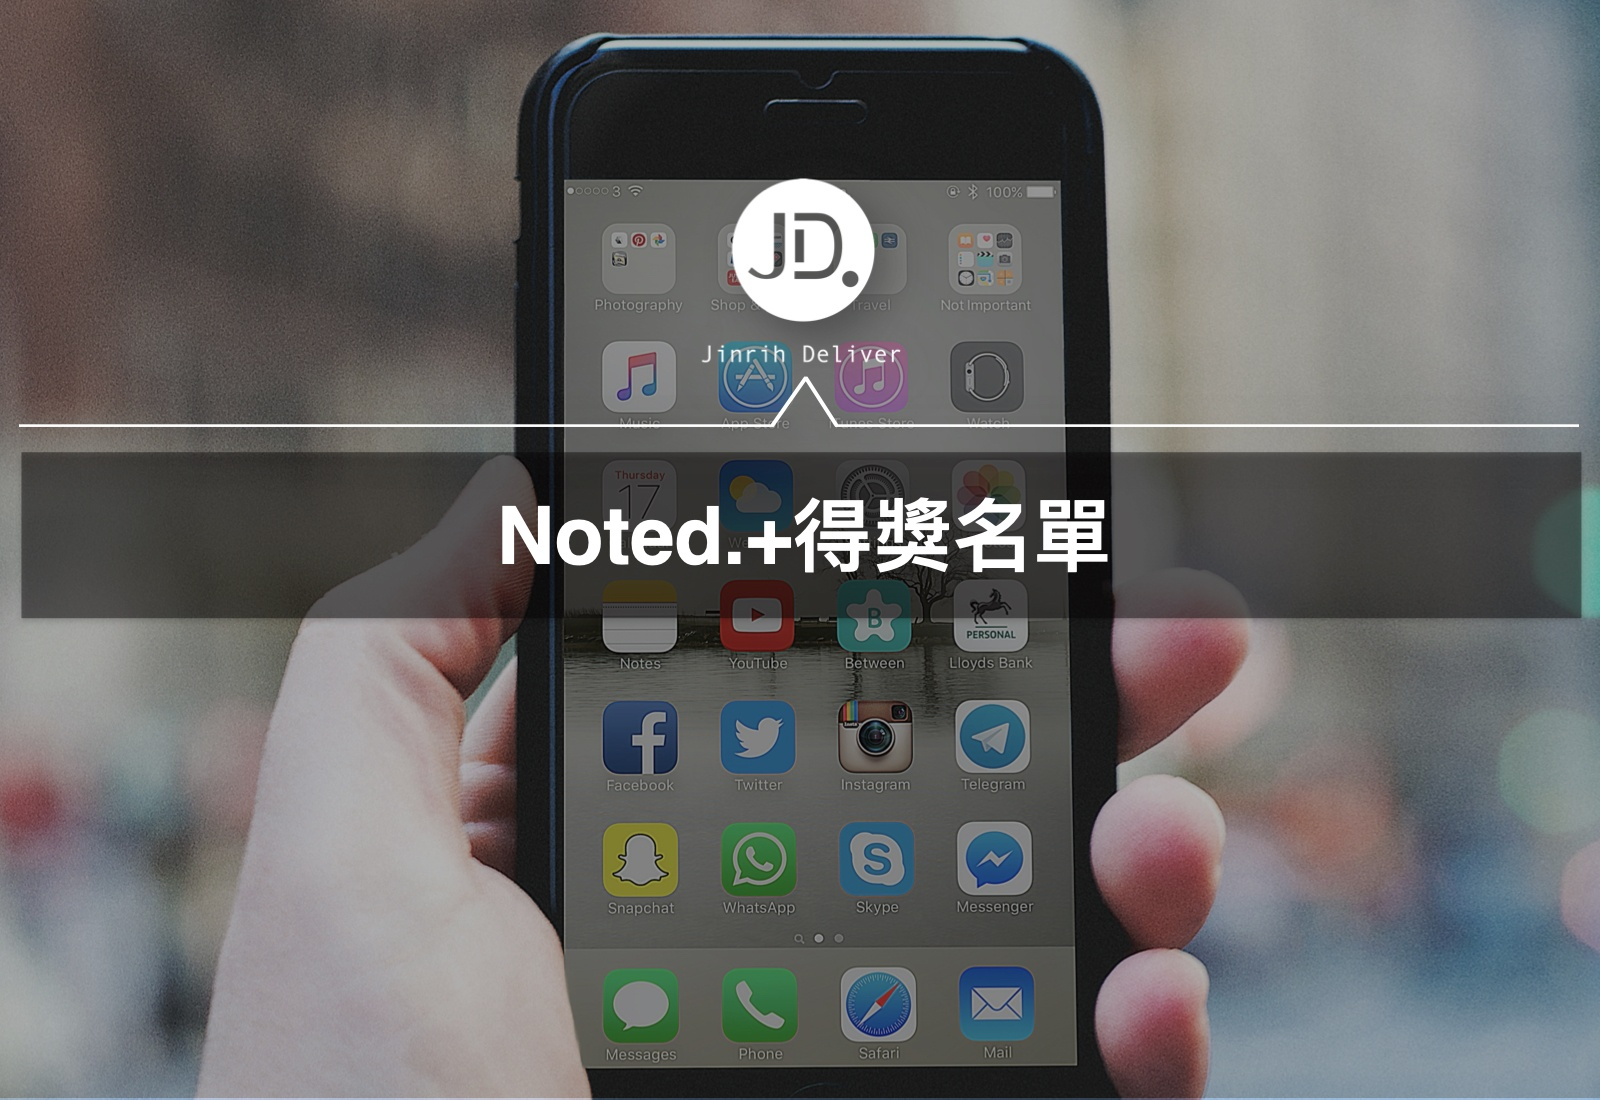 Noted.+ 中獎名單|Noted. x 今日訊息